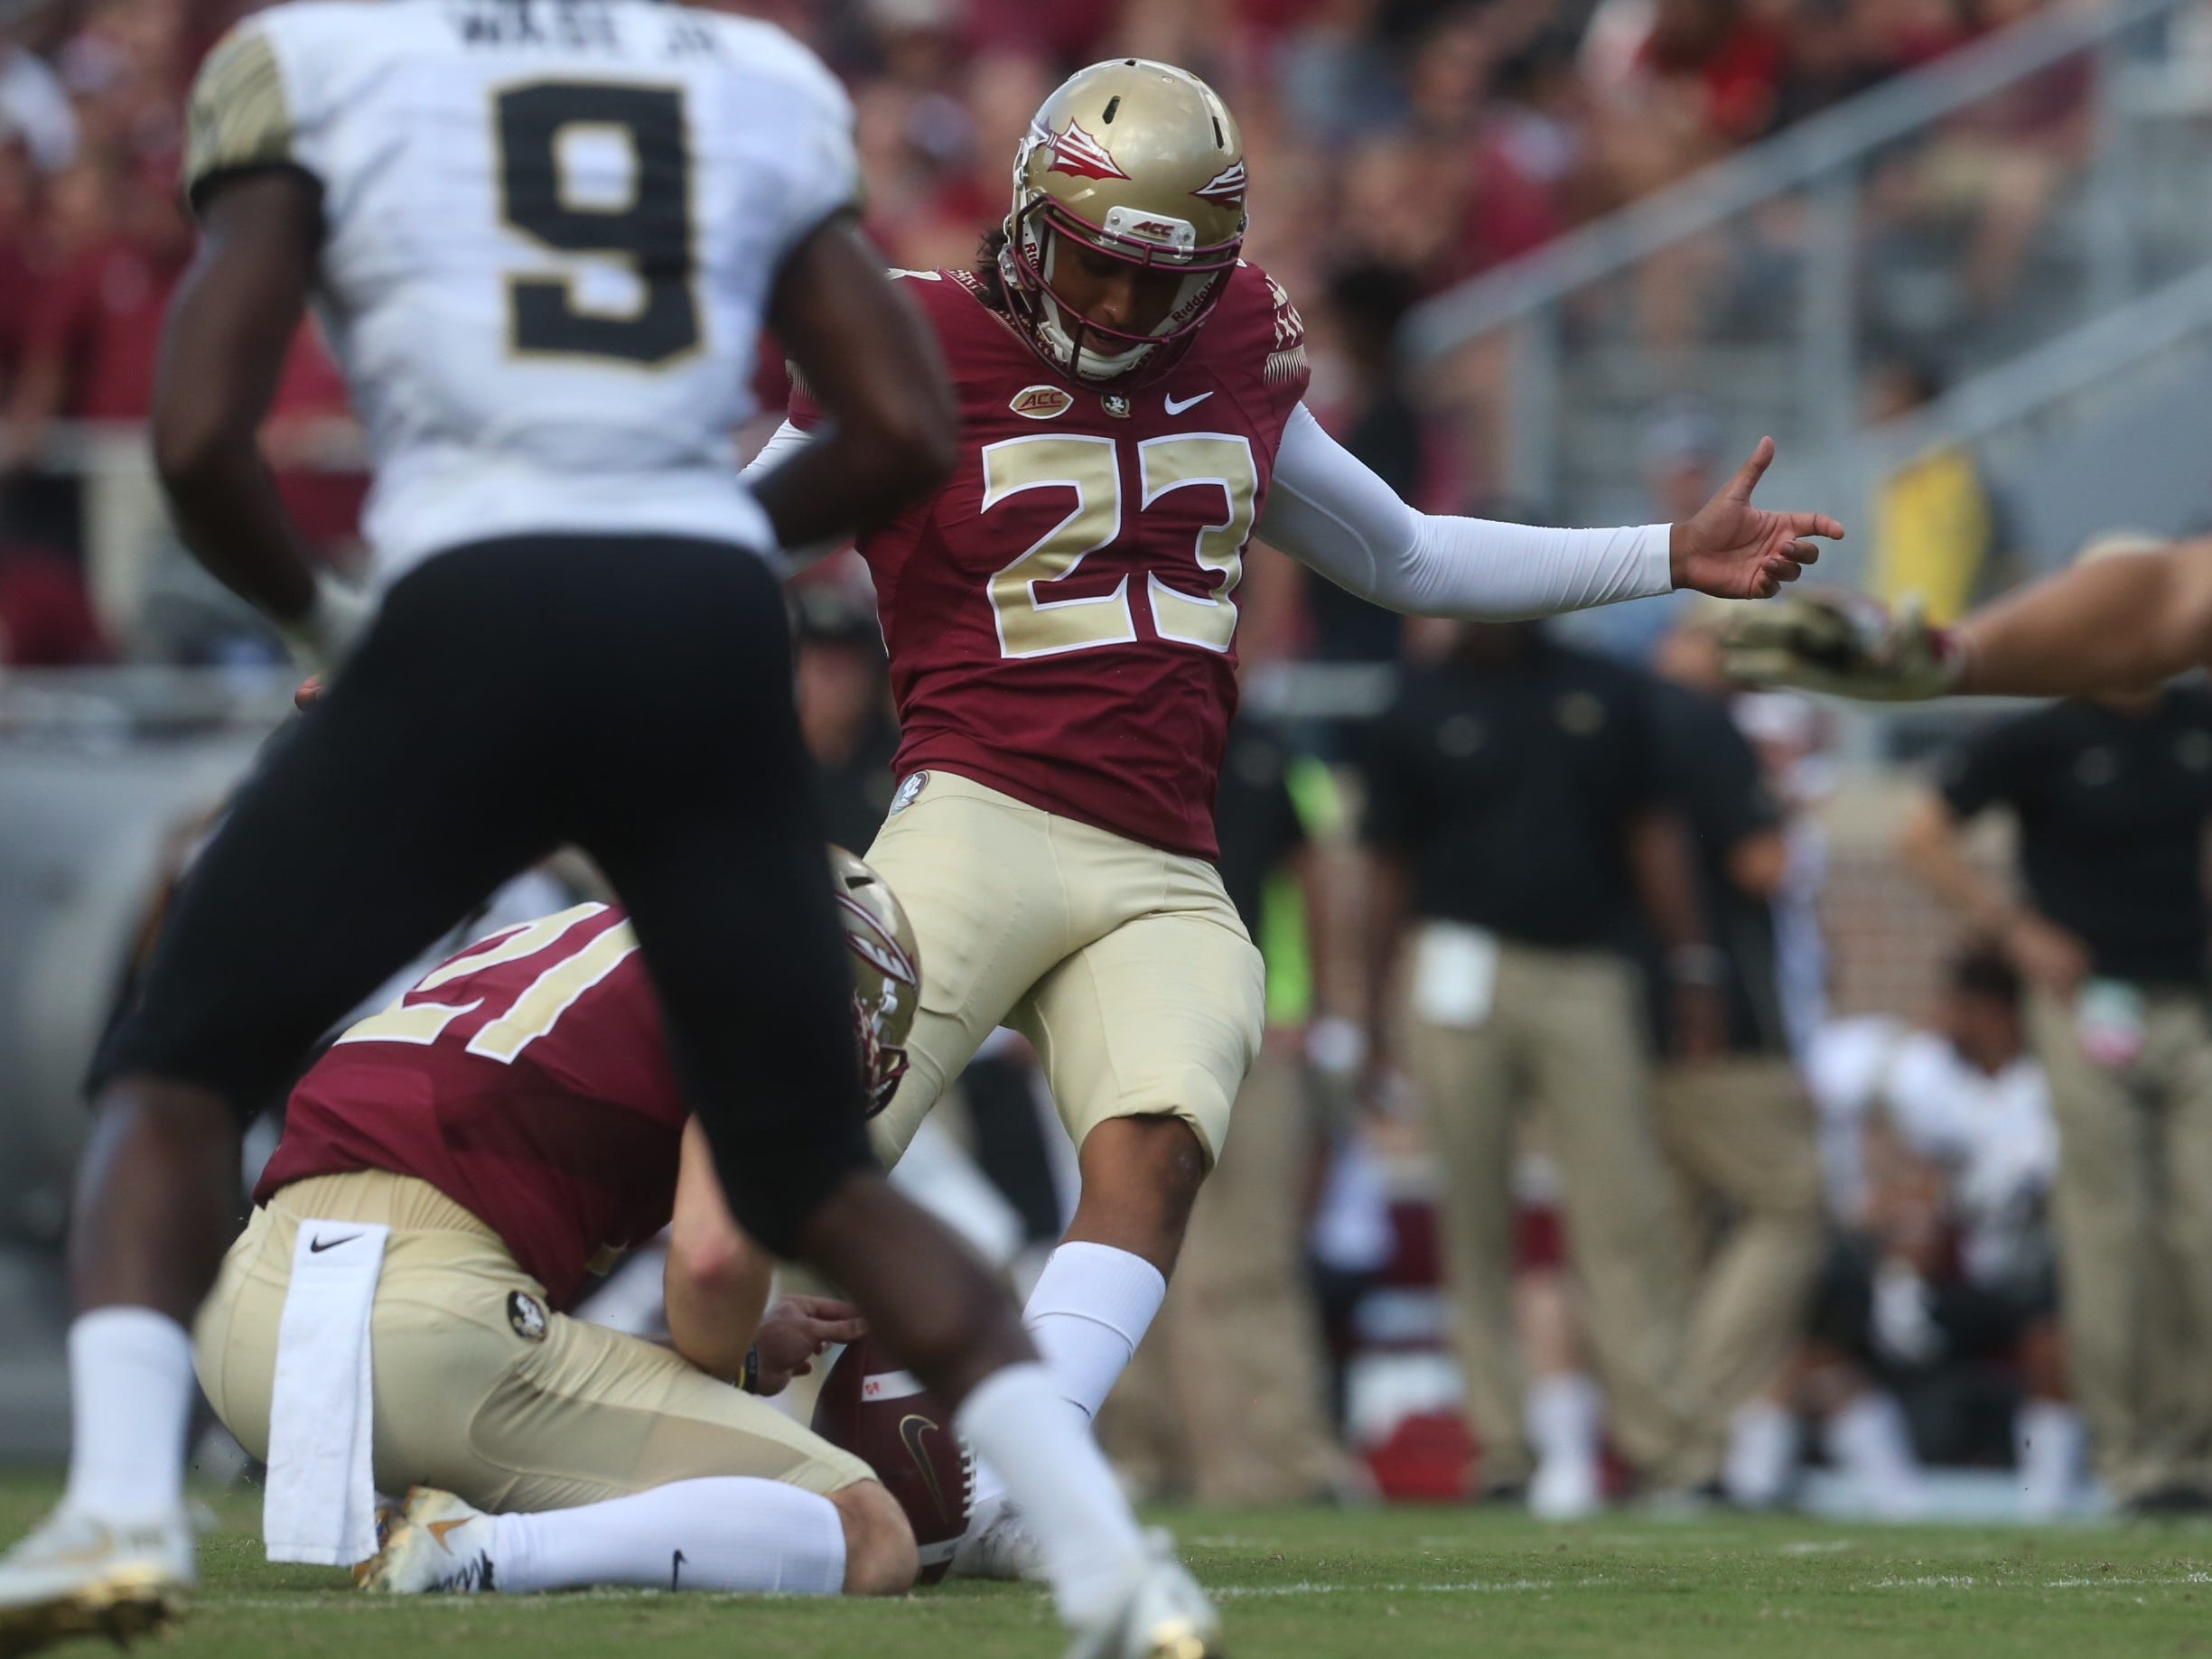 Florida State kicker Ricky Aguayo kicks an extra point during a game against Wake Forest at Doak Campbell Stadium on Saturday, Oct. 20, 2018.